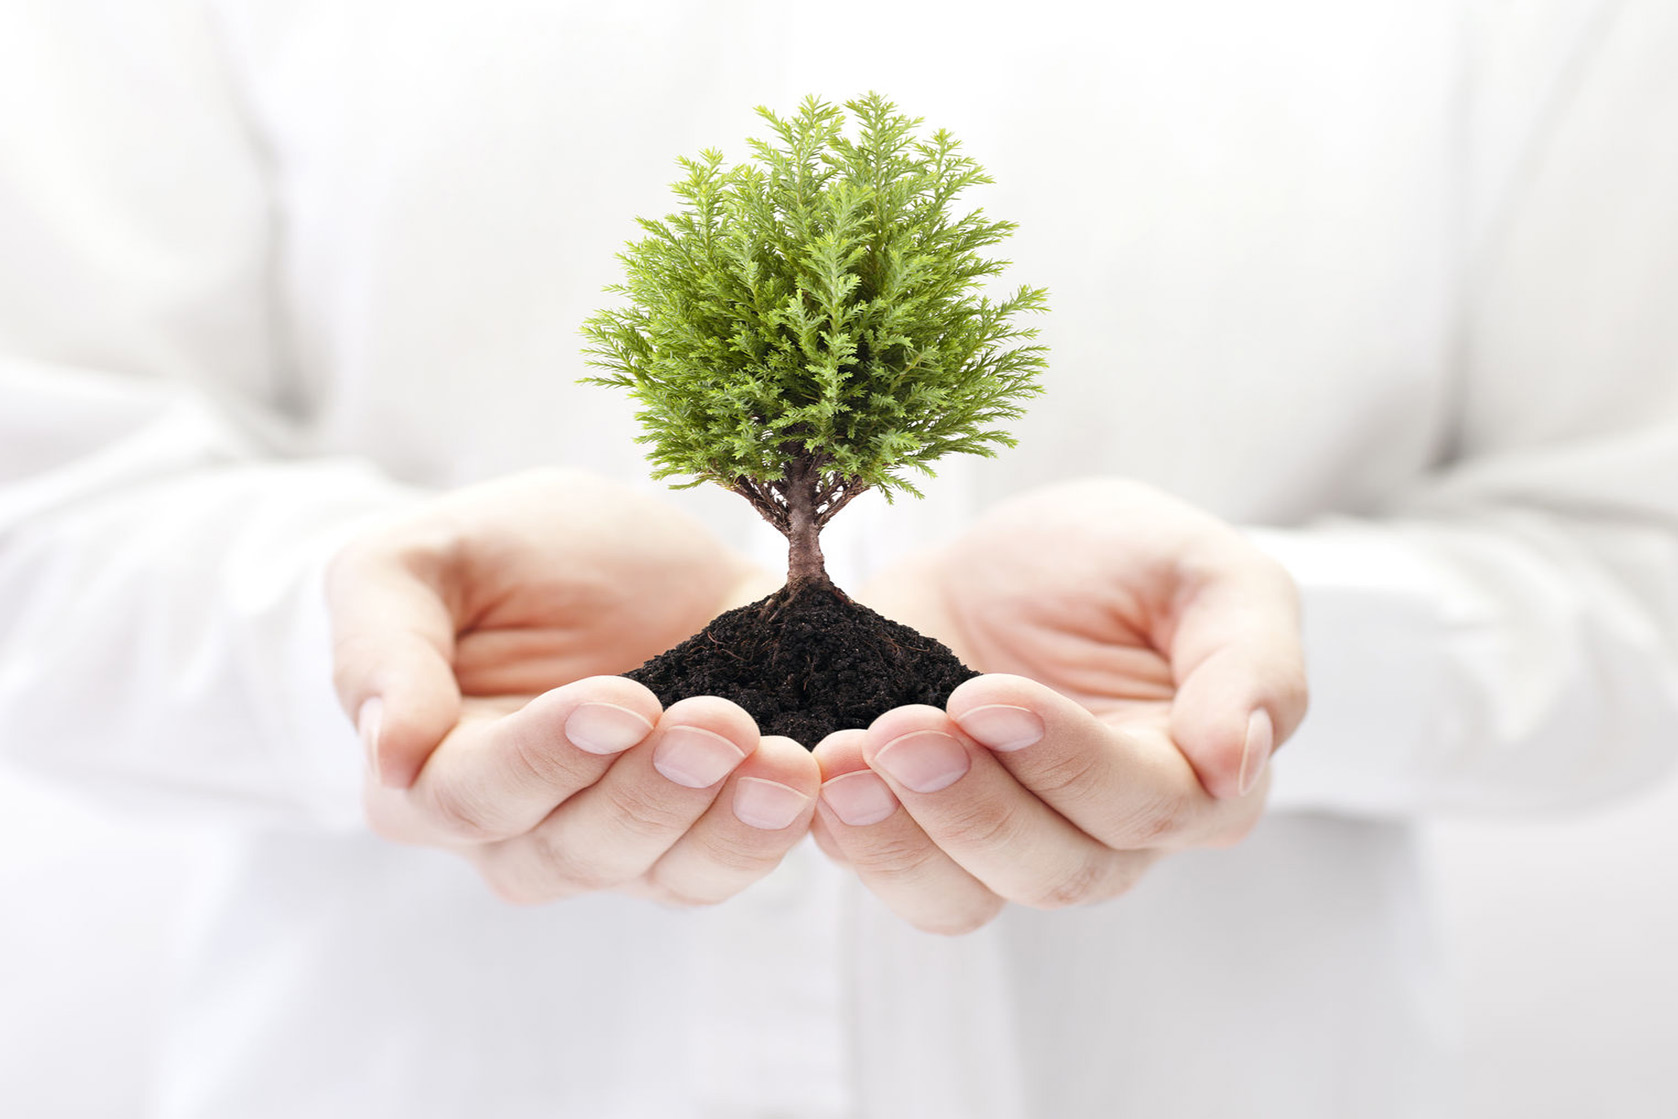 63995139 - growing green tree in hands